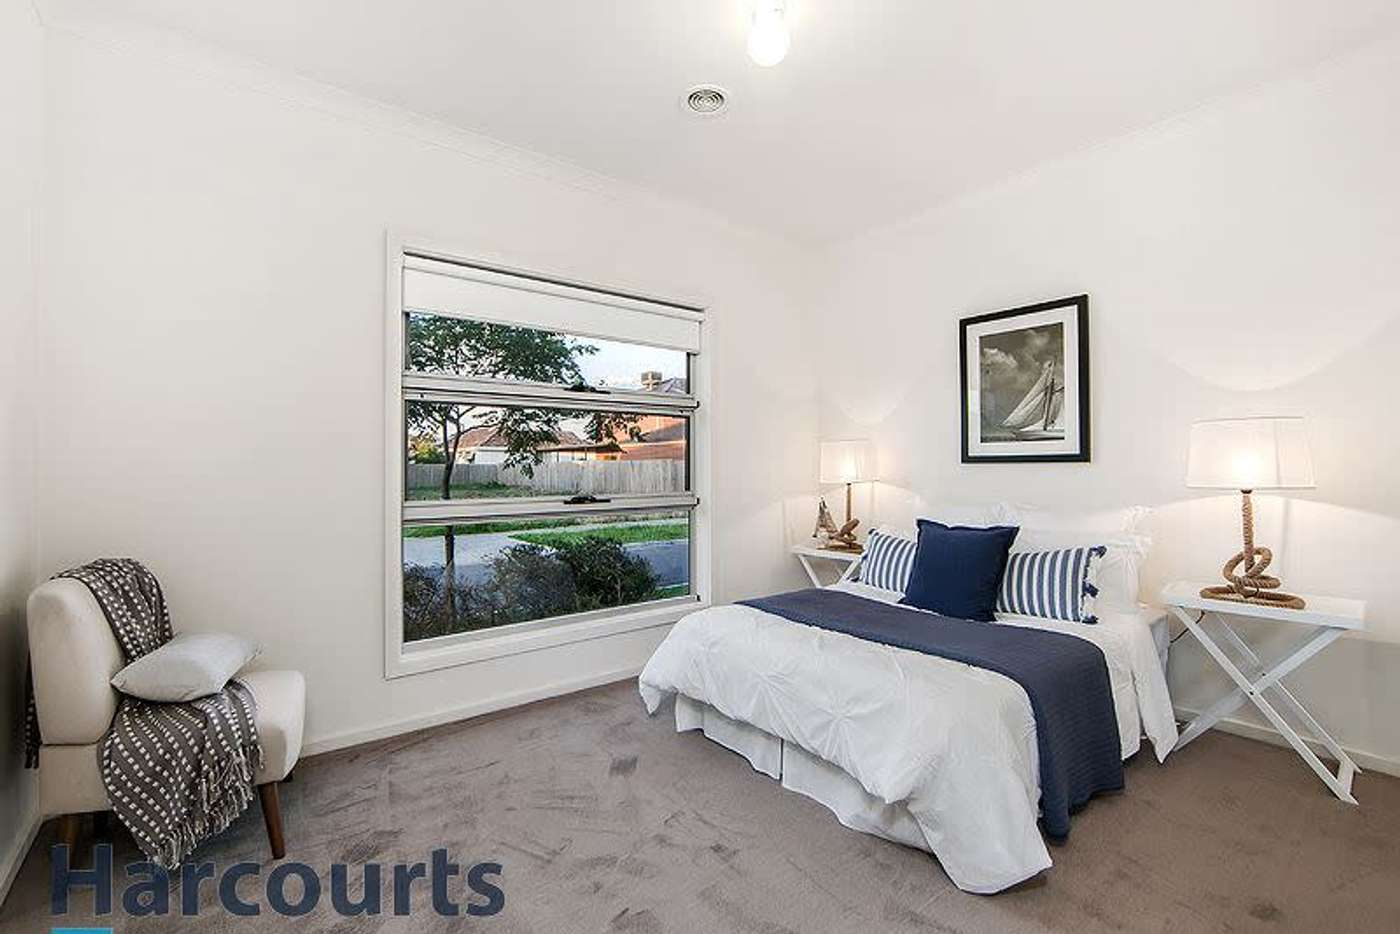 Sixth view of Homely house listing, 1 Struga Rd, Sunshine West VIC 3020